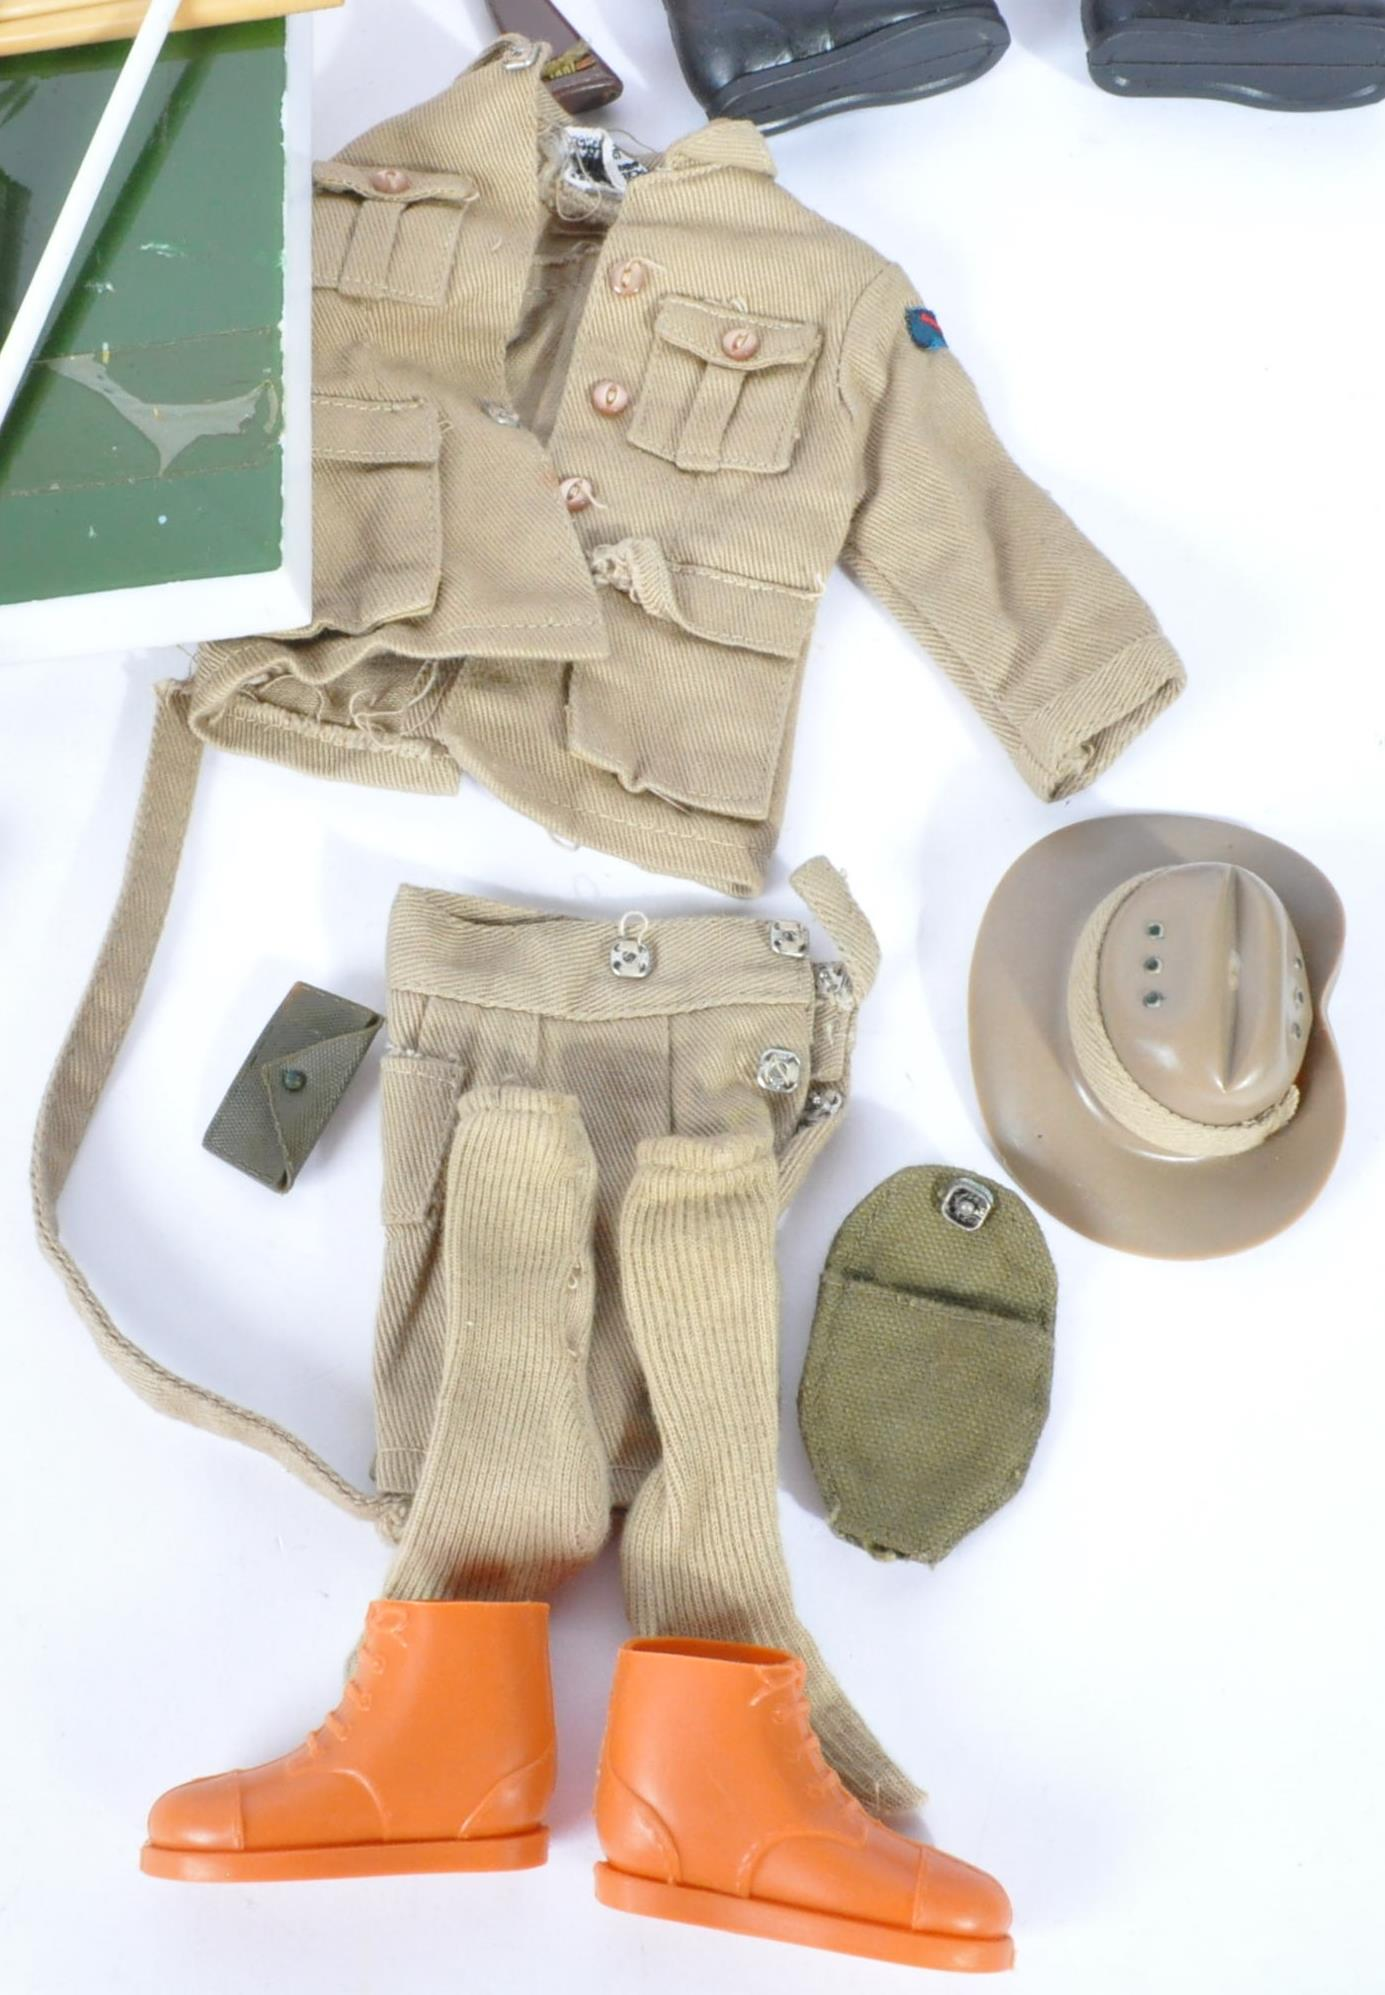 ACTION MAN - COLLECTION OF VINTAGE PALITOY UNIFORMS & FIGURE - Image 7 of 9